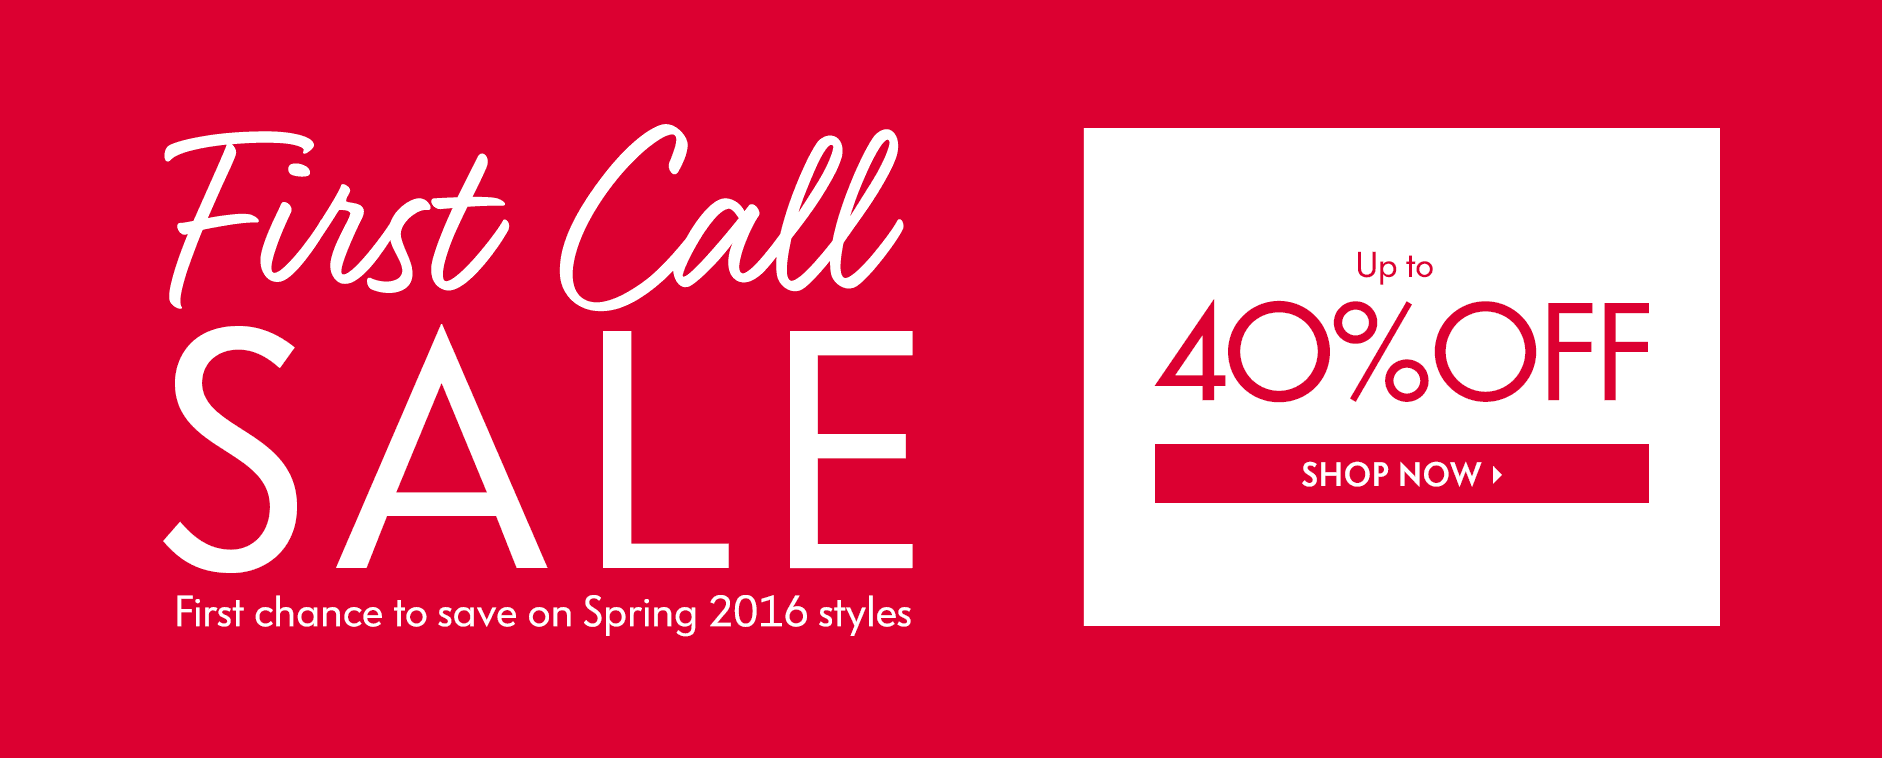 First Call Sale: First chance to save on Spring 2016 styles - Up to 40% Off